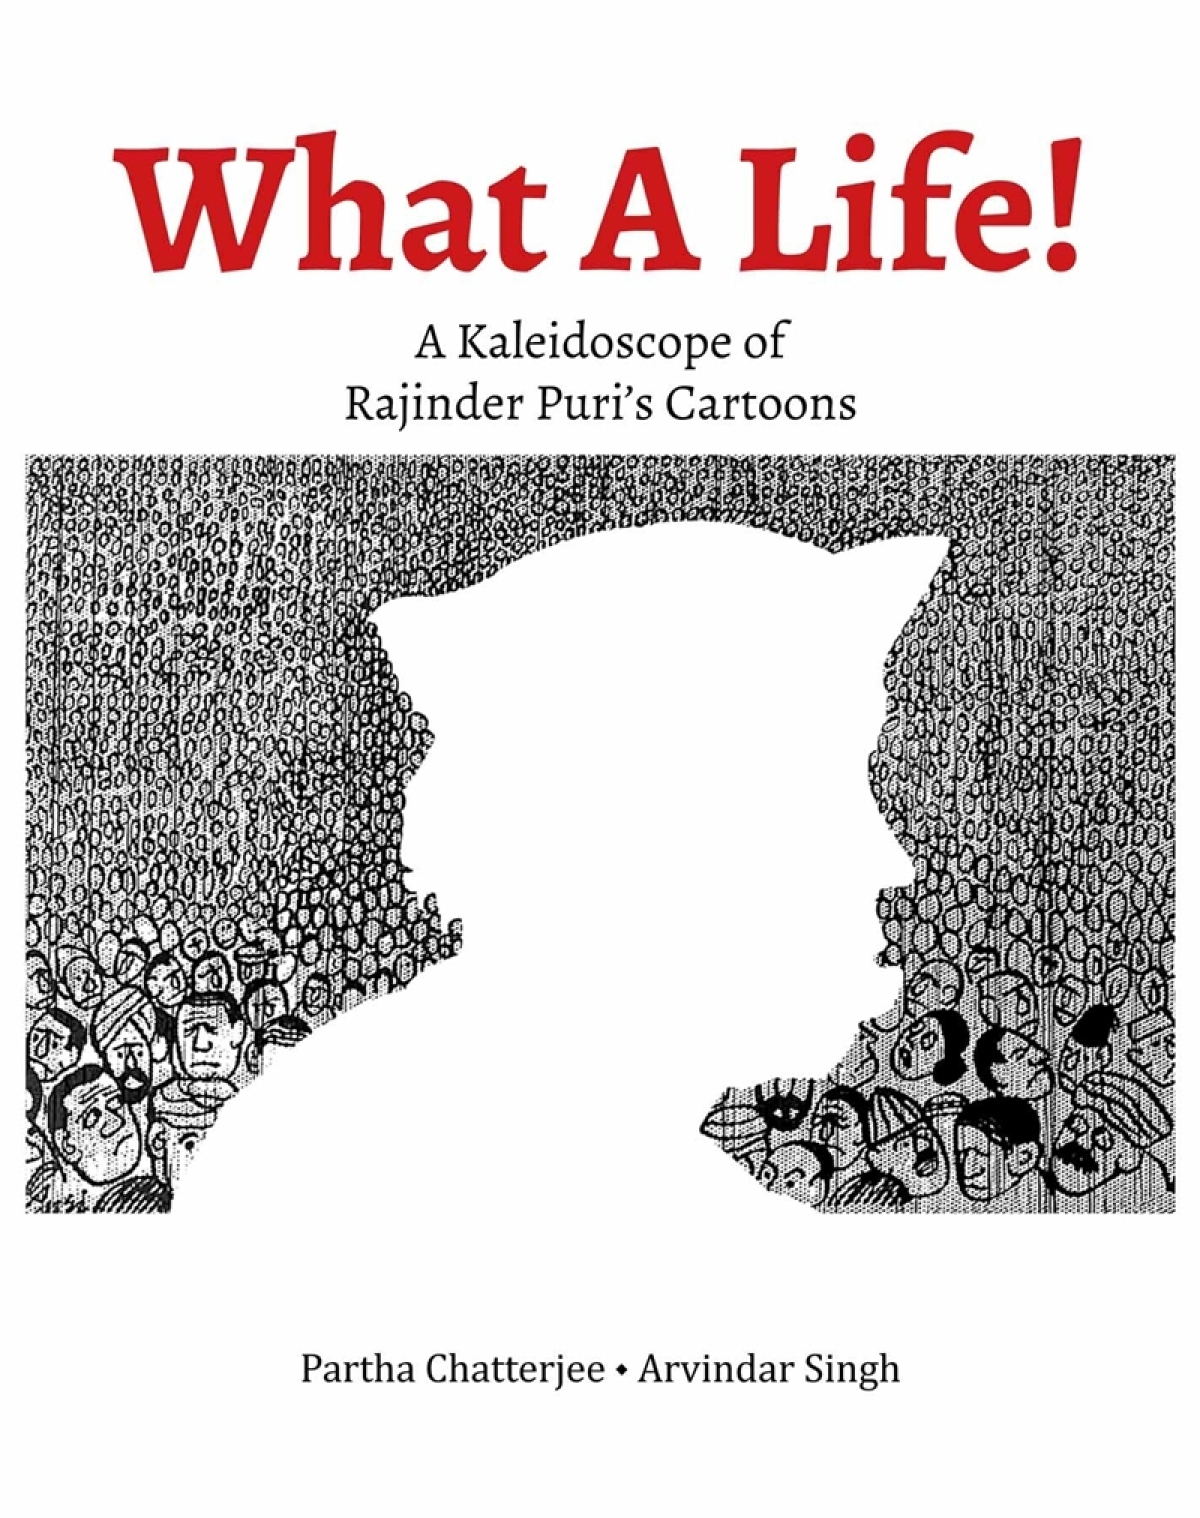 What a Life! A Kaleidoscope of Rajinder Puri's Cartoons by Partha Chatterjee, Arvindar Singh- Review